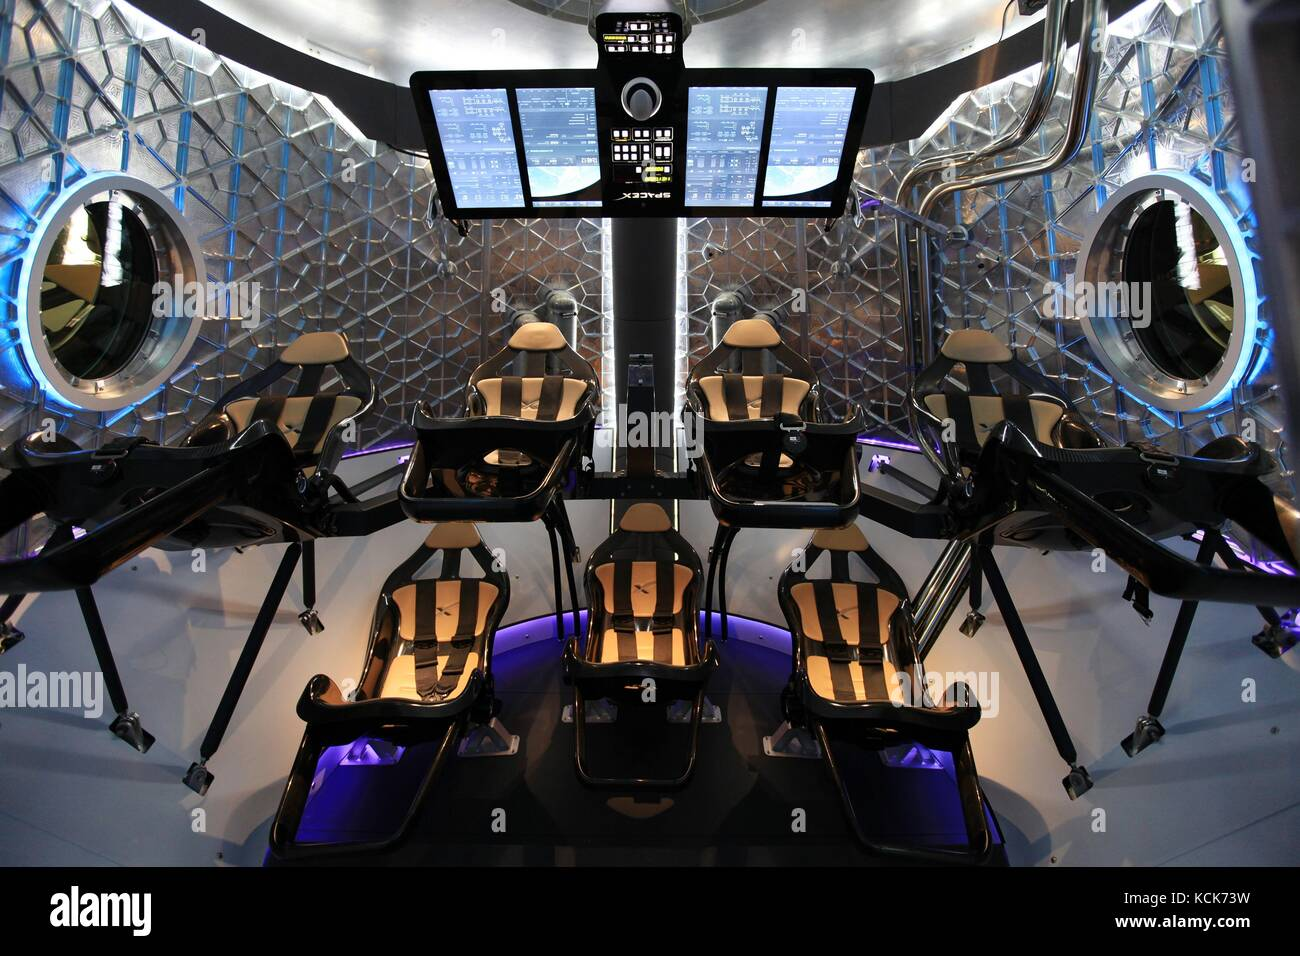 The interior of the NASA SpaceX Dragon V2 human-rated spacecraft has a seven-crew capacity May 30, 2014 in Hawthorne, - Stock Image